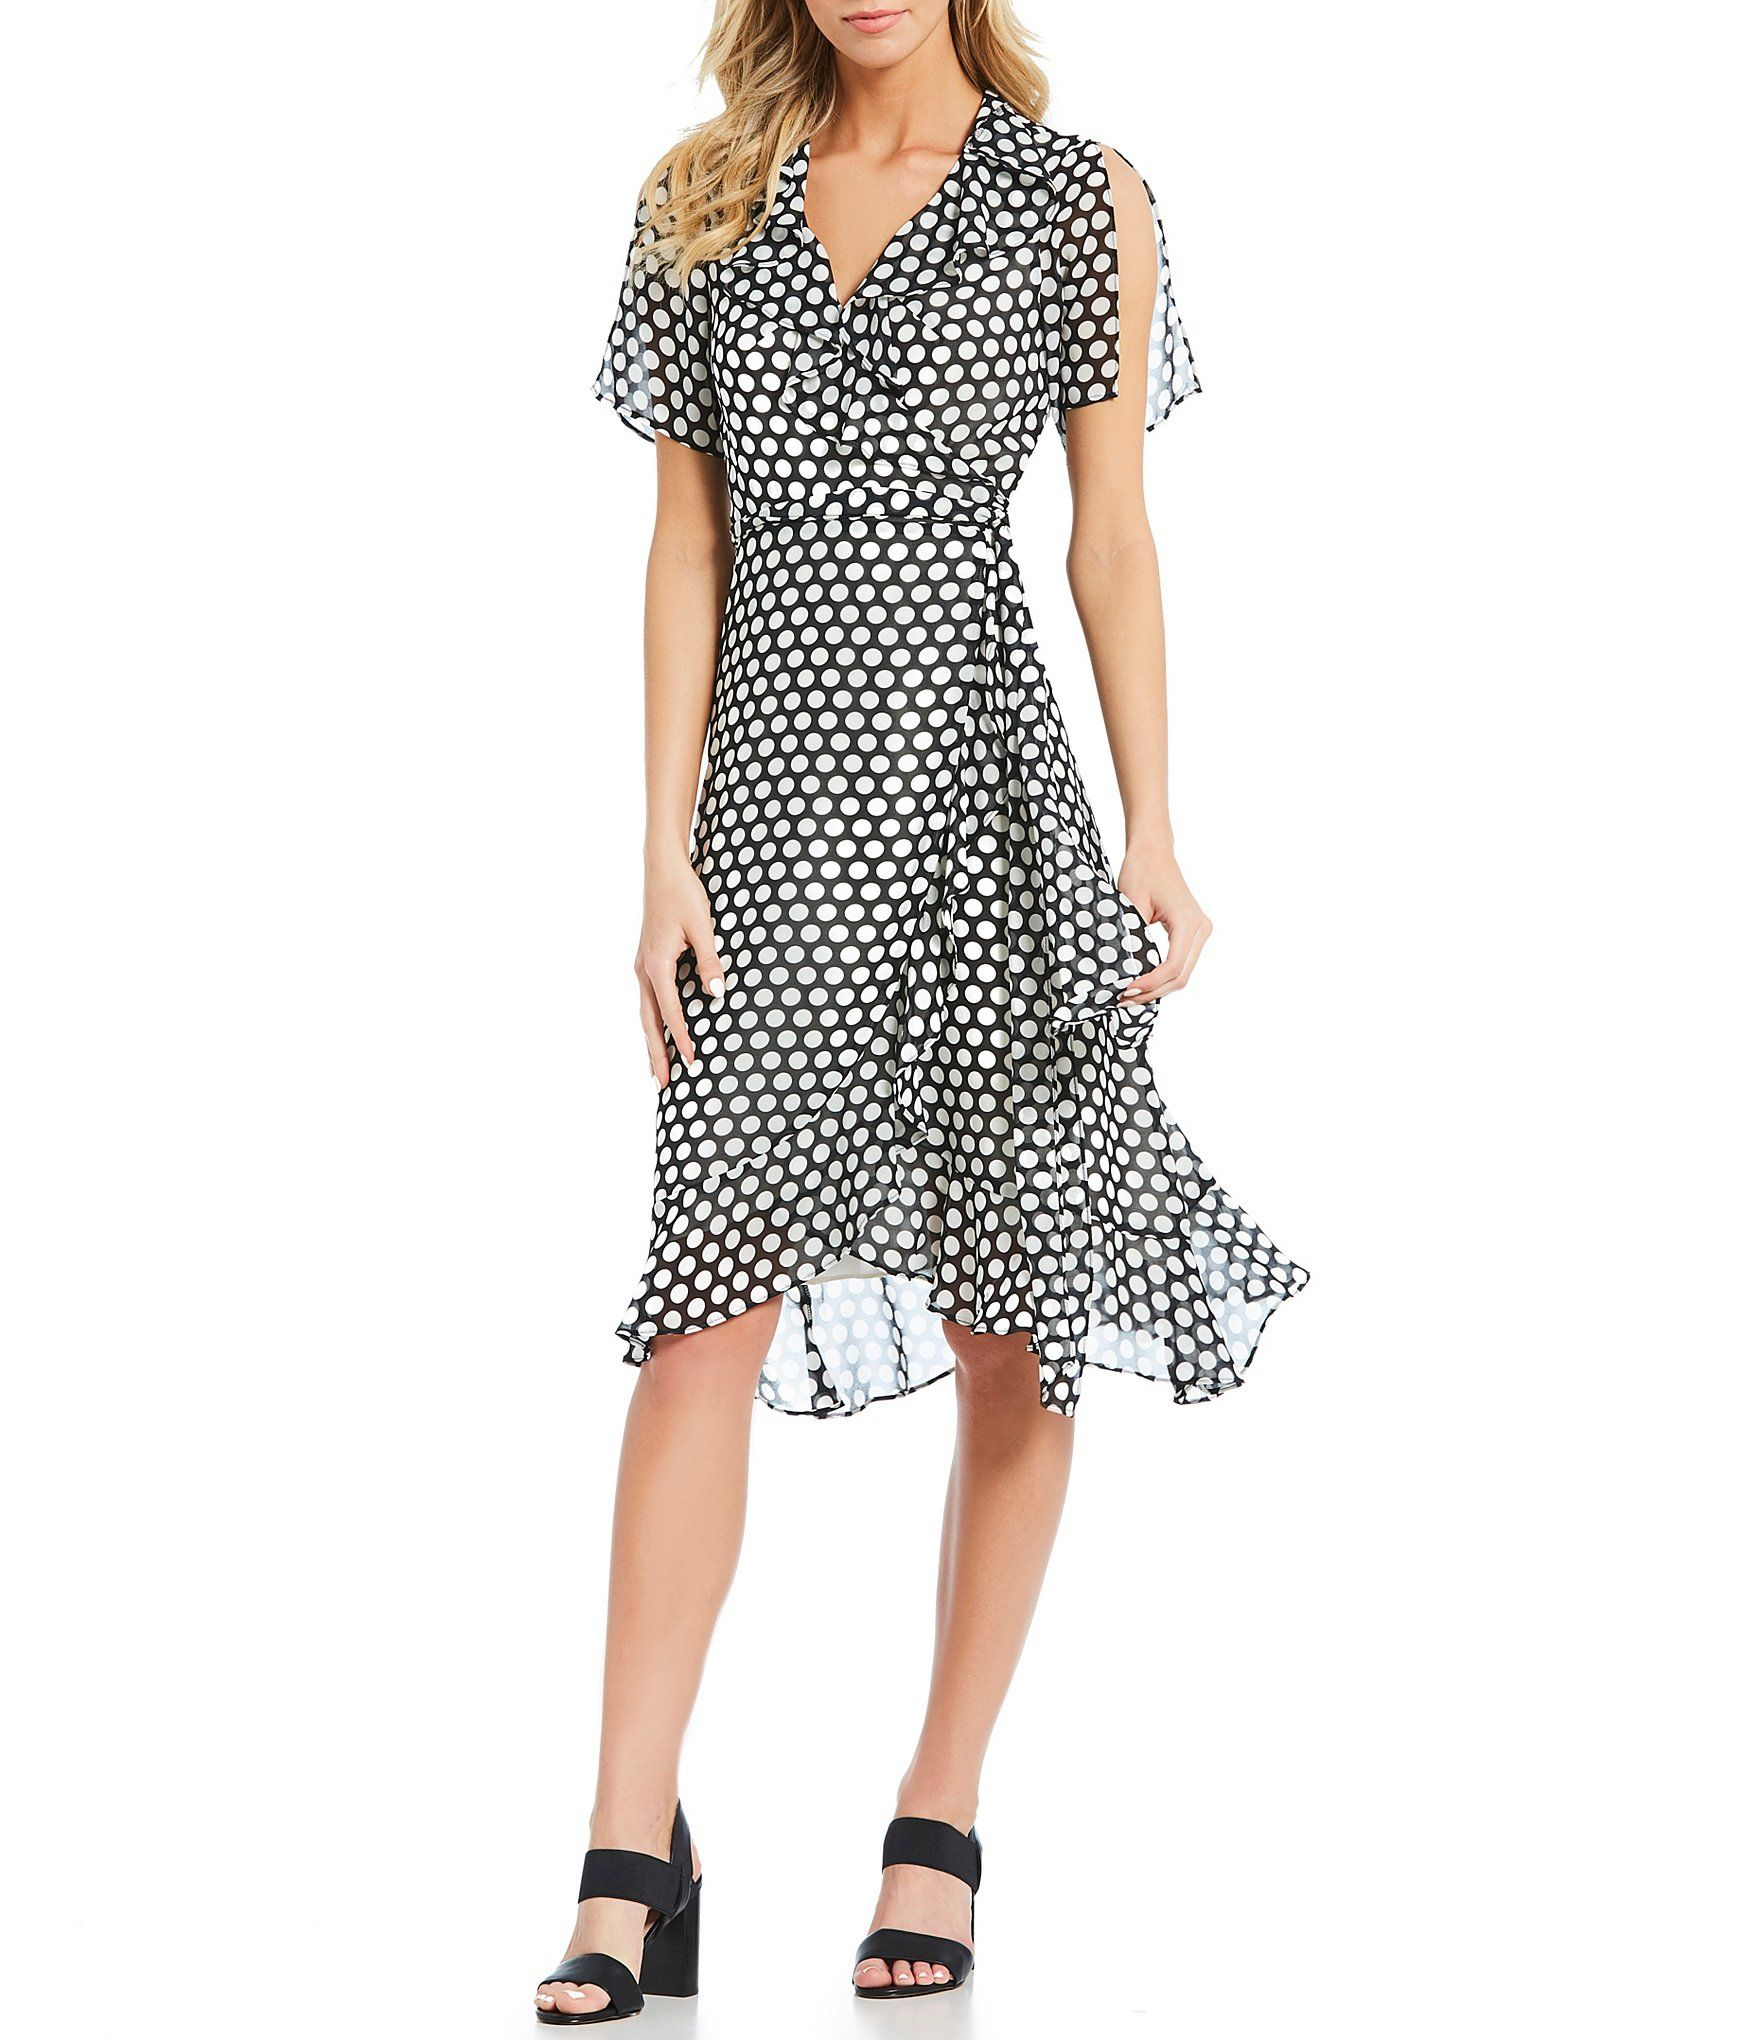 ded8312010b Shop for Donna Morgan Polka Dot Hi-Low Ruffle Hem Midi Length Wrap Dress at  Dillards.com. Visit Dillards.com to find clothing